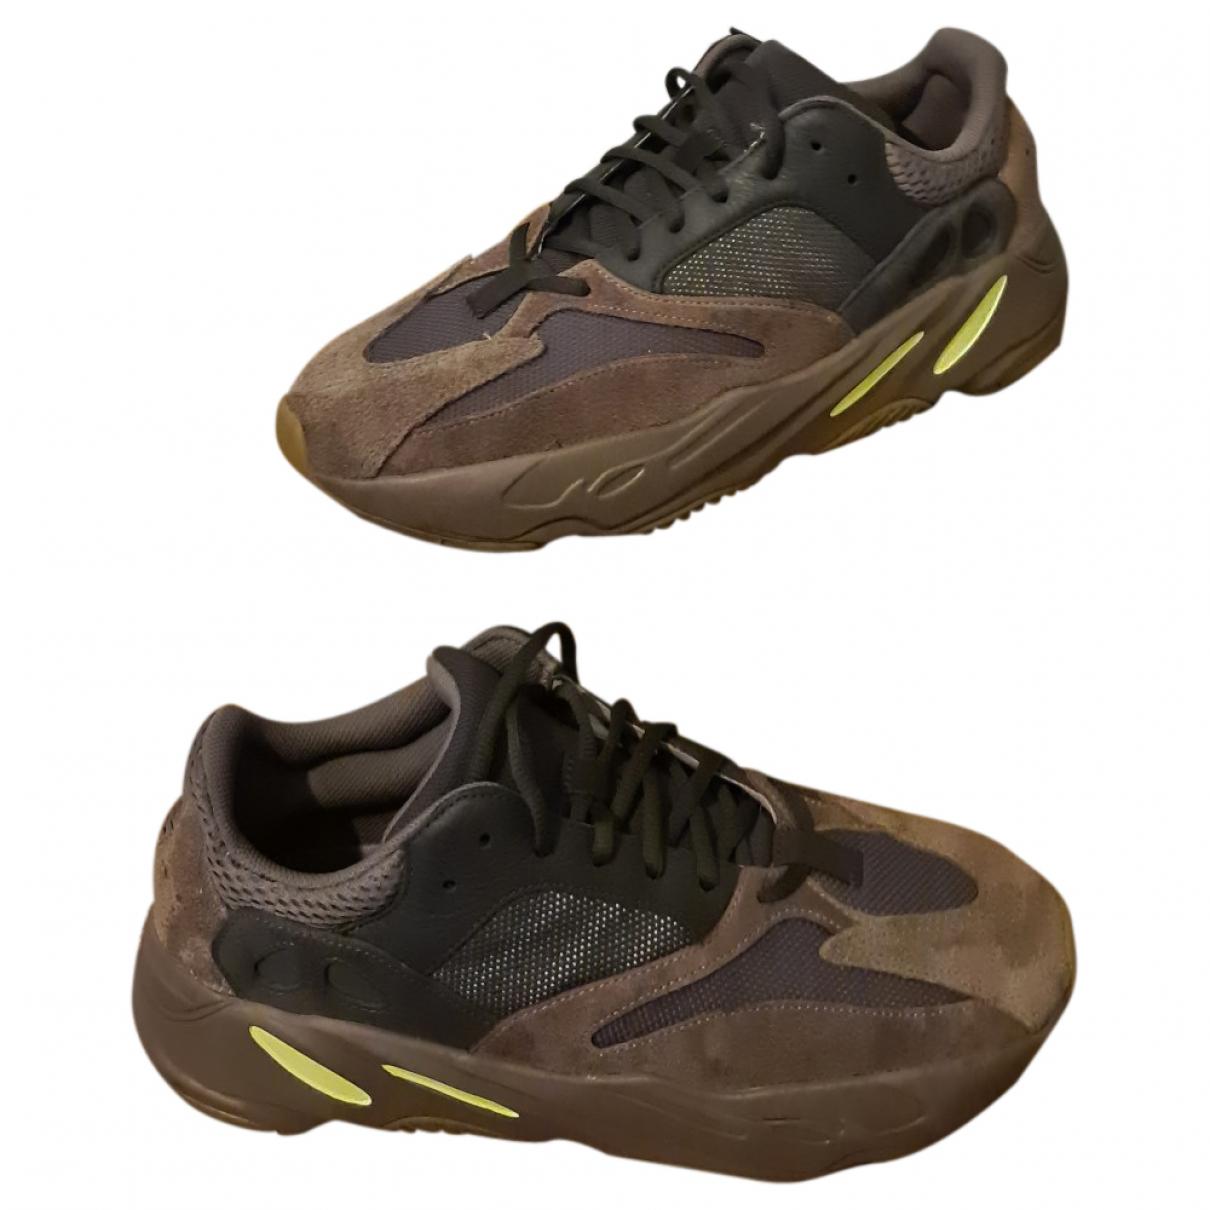 Yeezy X Adidas Boost 700 V1  Brown Suede Trainers for Men 10 UK